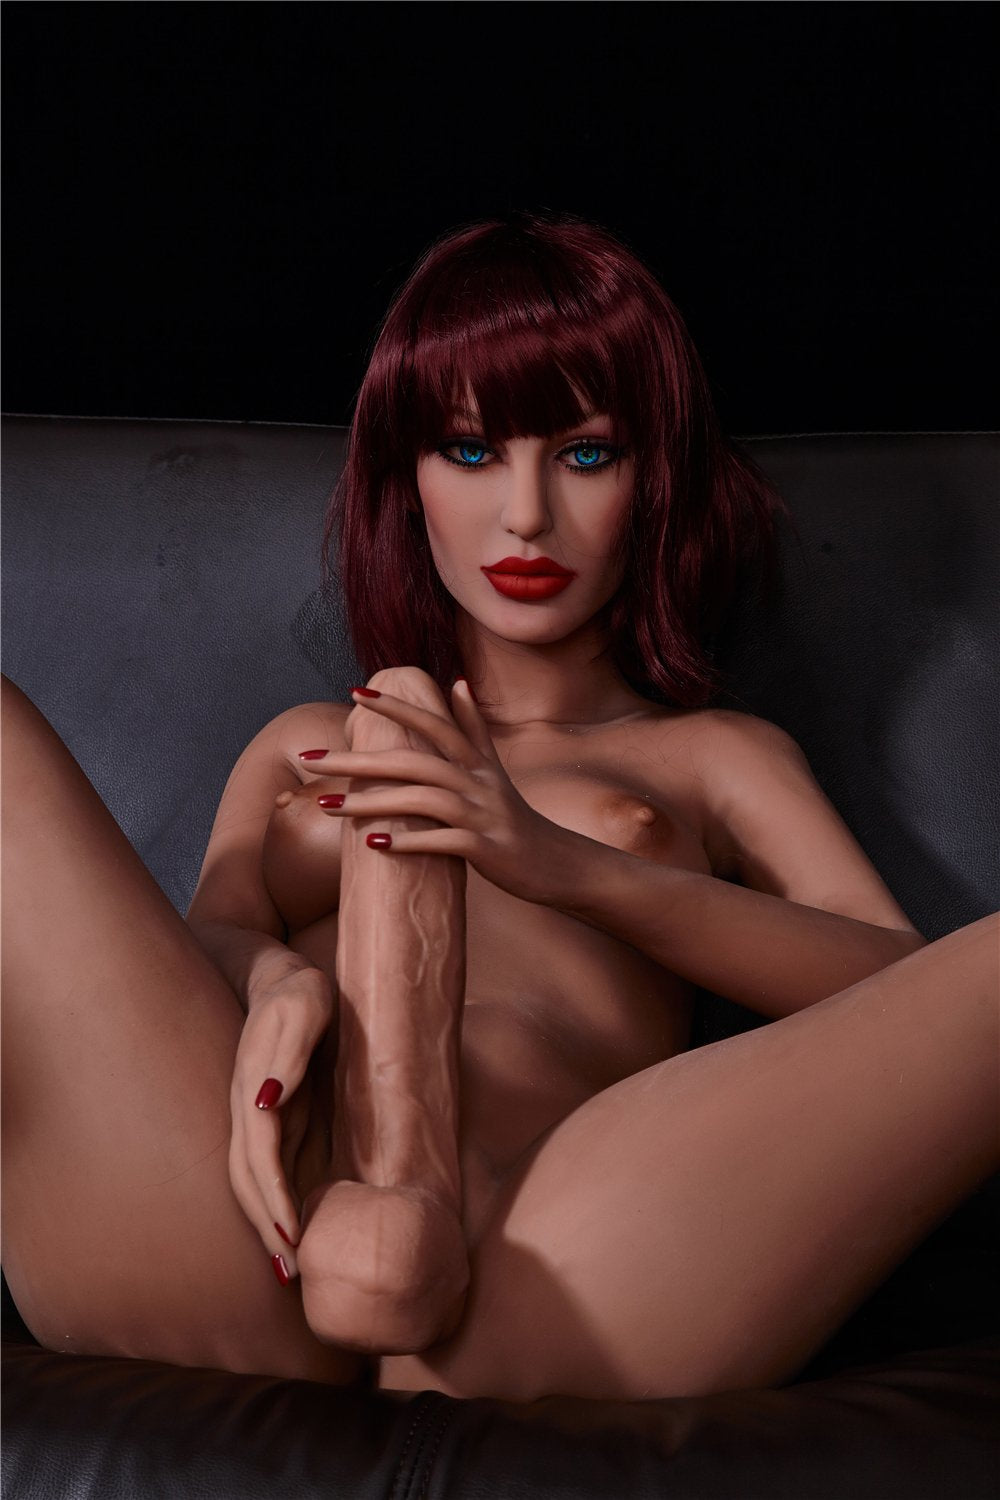 stella 155cm red hair tpe transsexual shemale gay boy sex doll(11)